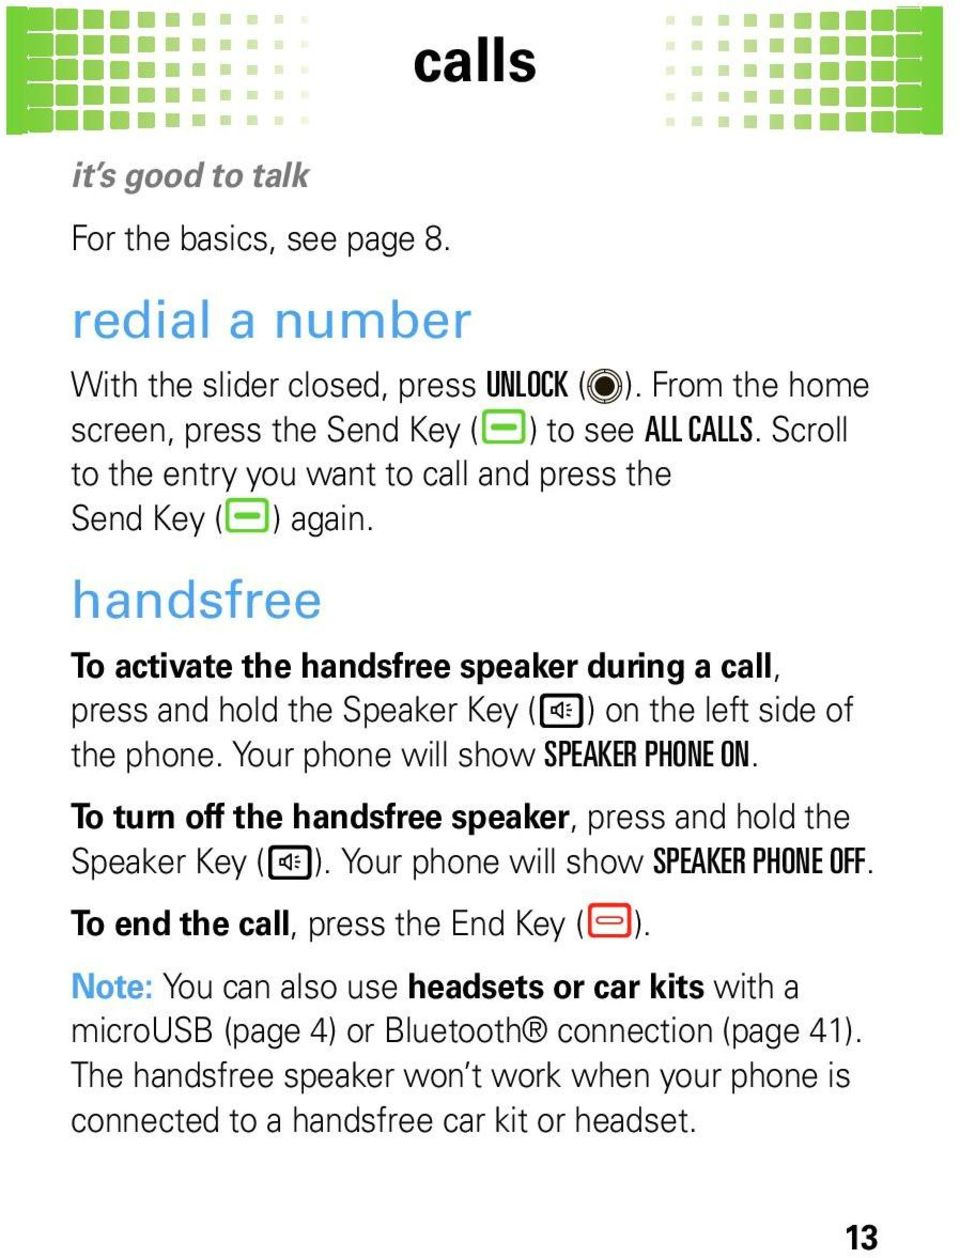 handsfree To activate the handsfree speaker during a call, press and hold the Speaker Key (h) on the left side of the phone. Your phone will show SPEAKER PHONE ON.